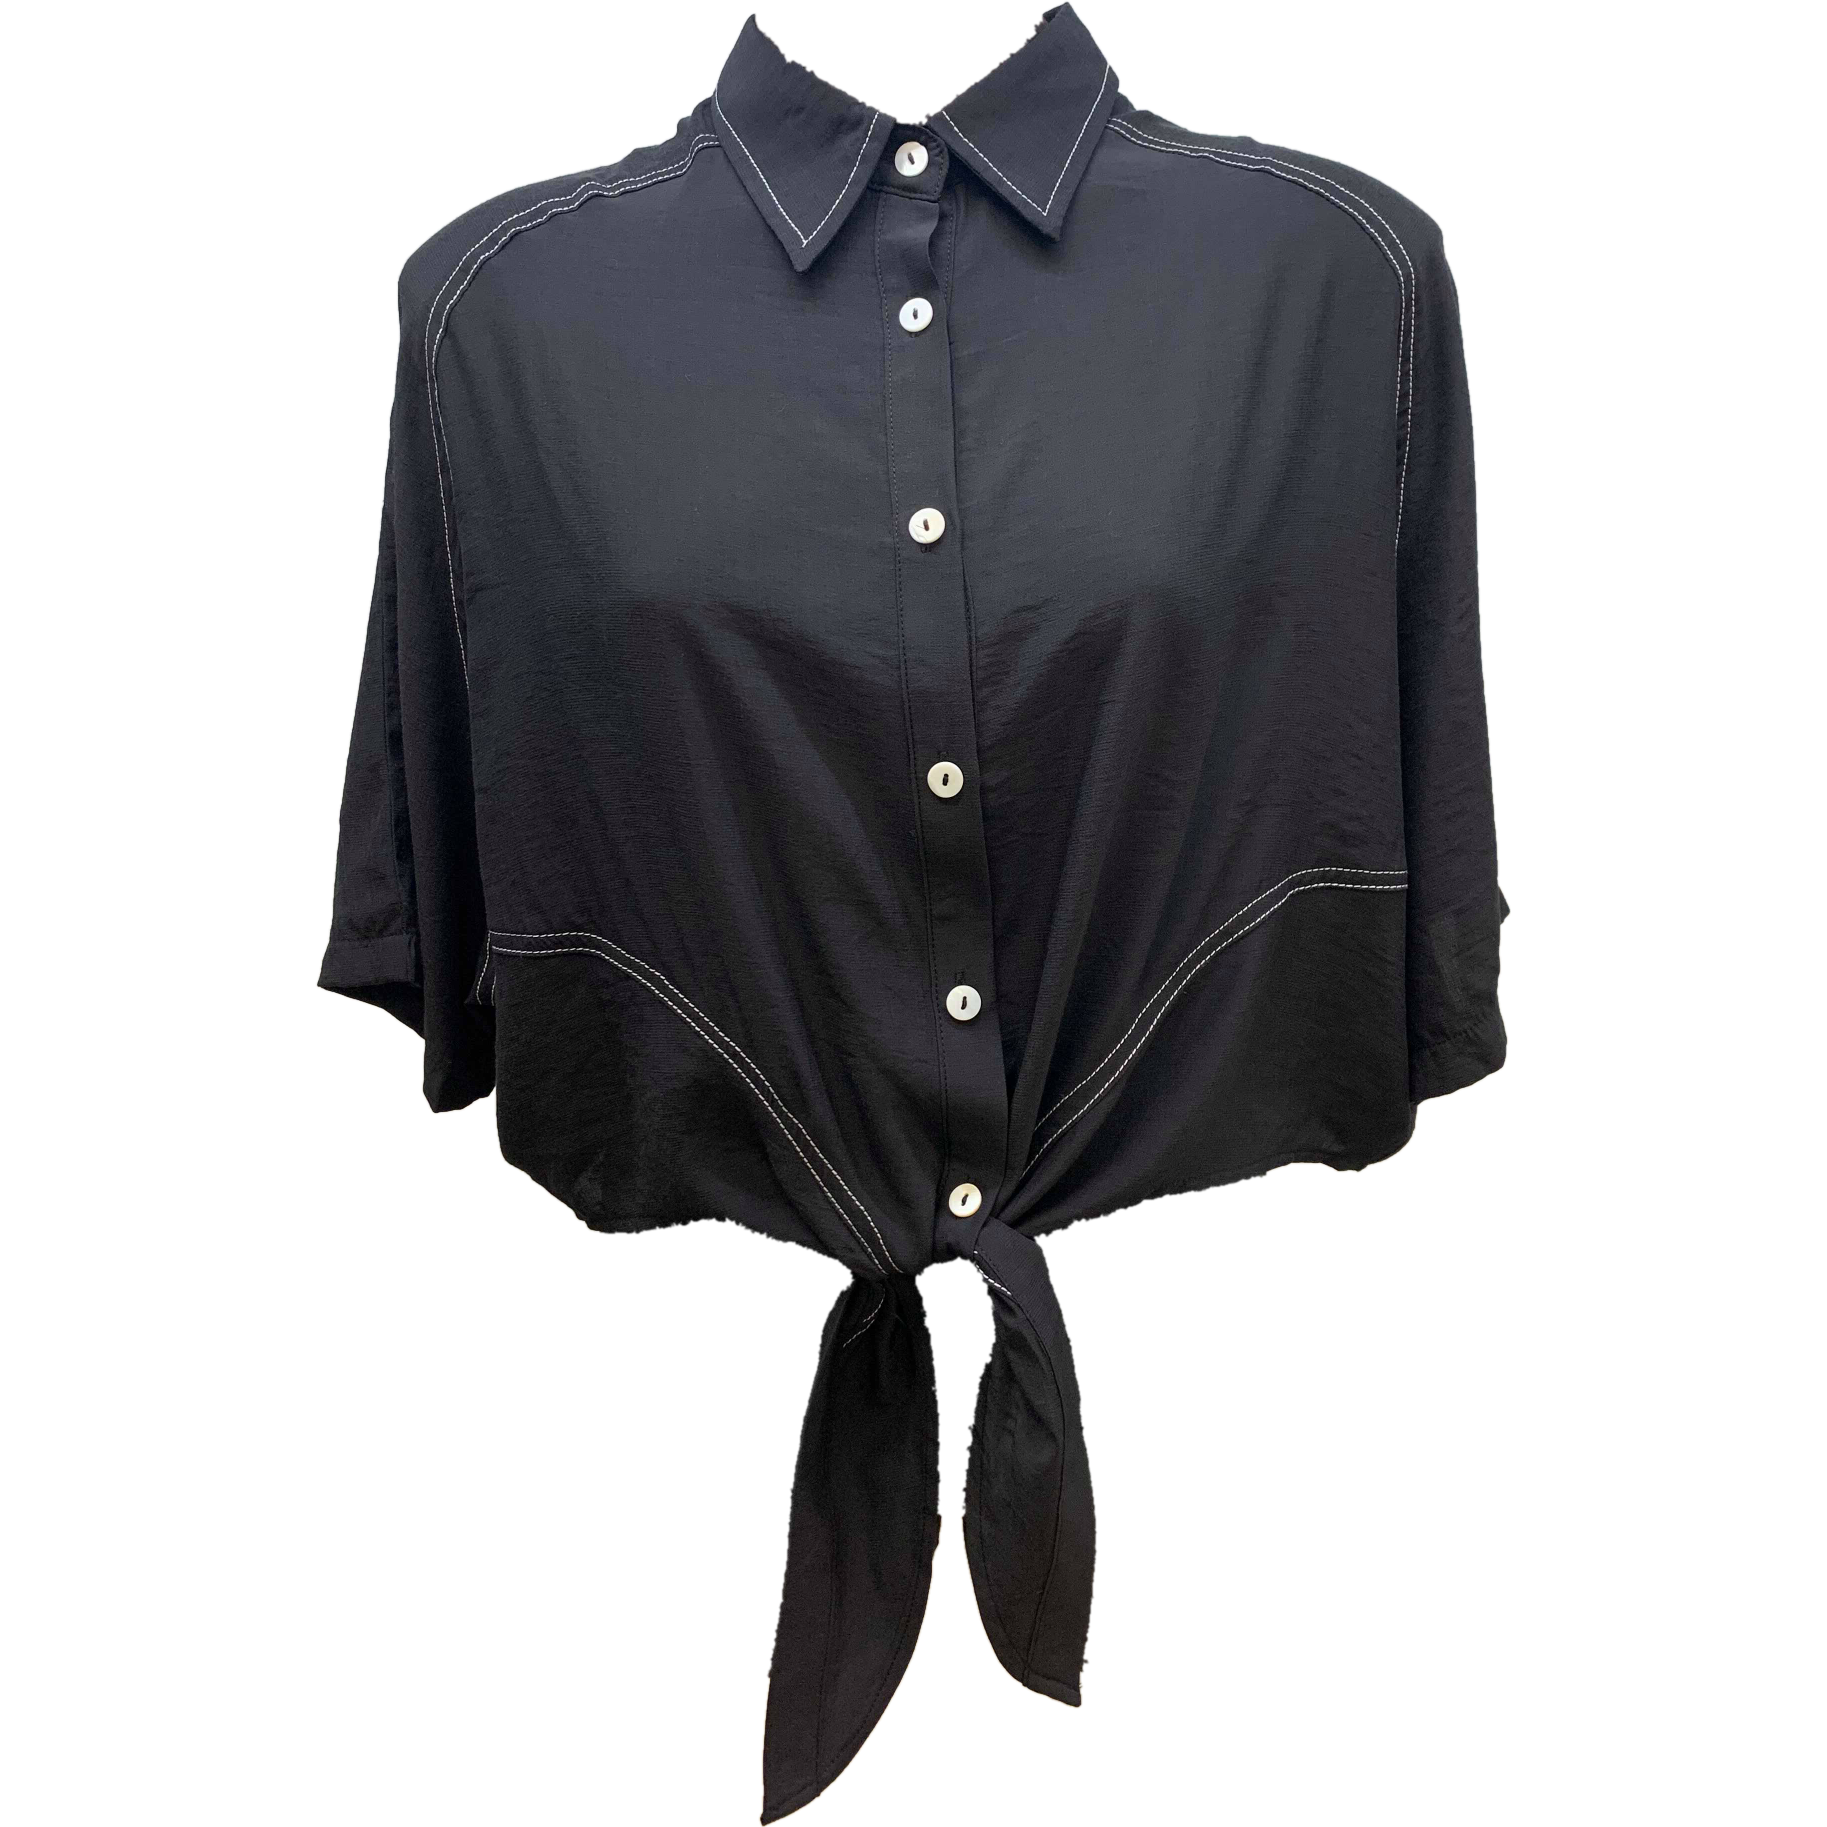 Rubyyaya Tie Top Black